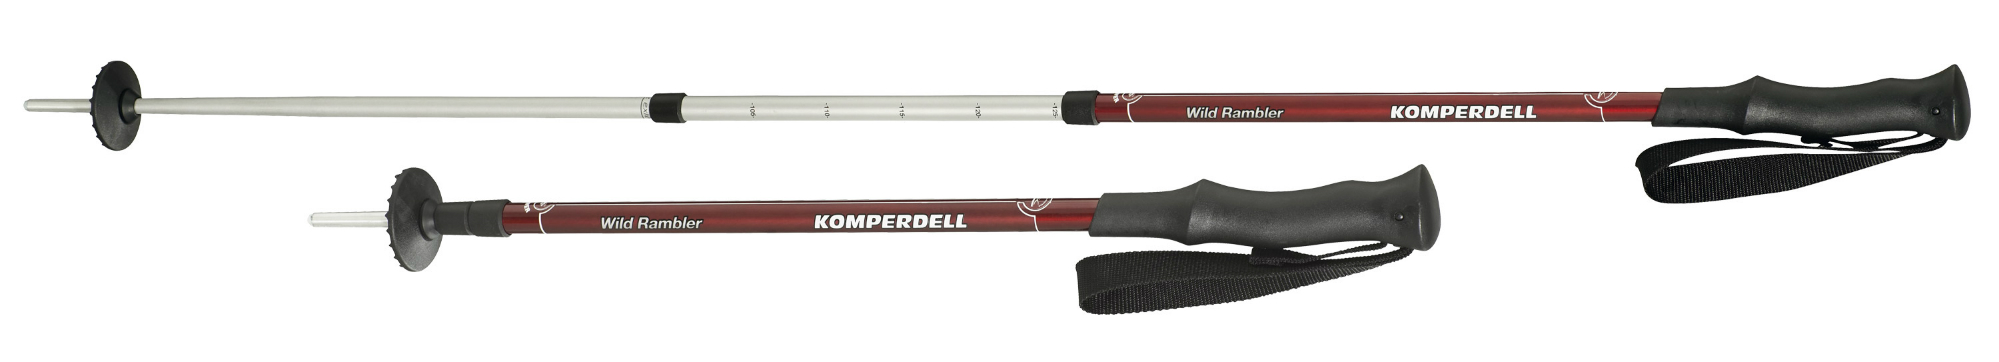 photo: Komperdell Wild Rambler rigid trekking pole